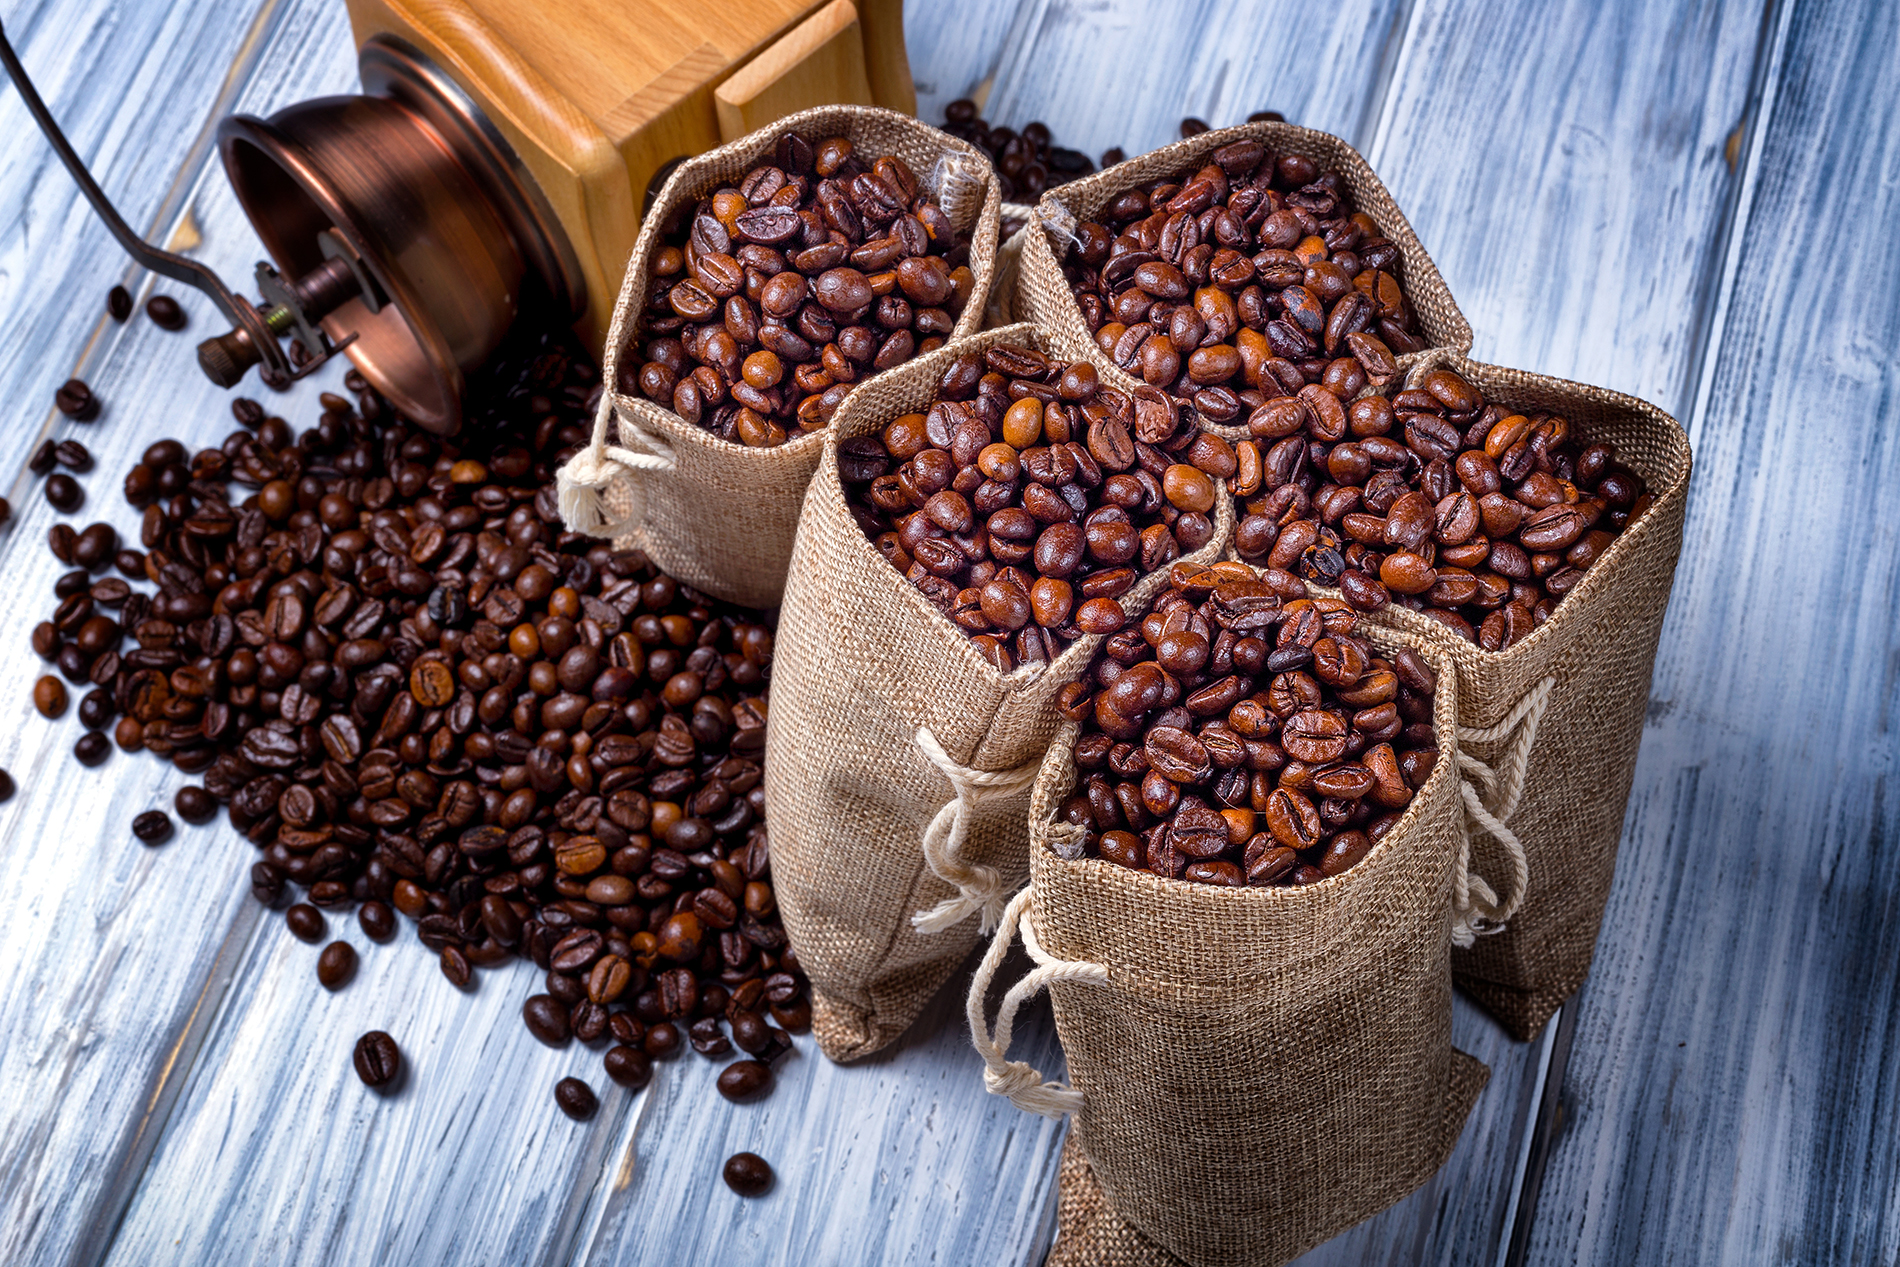 Coffee grinder with bags of coffee beans 53629